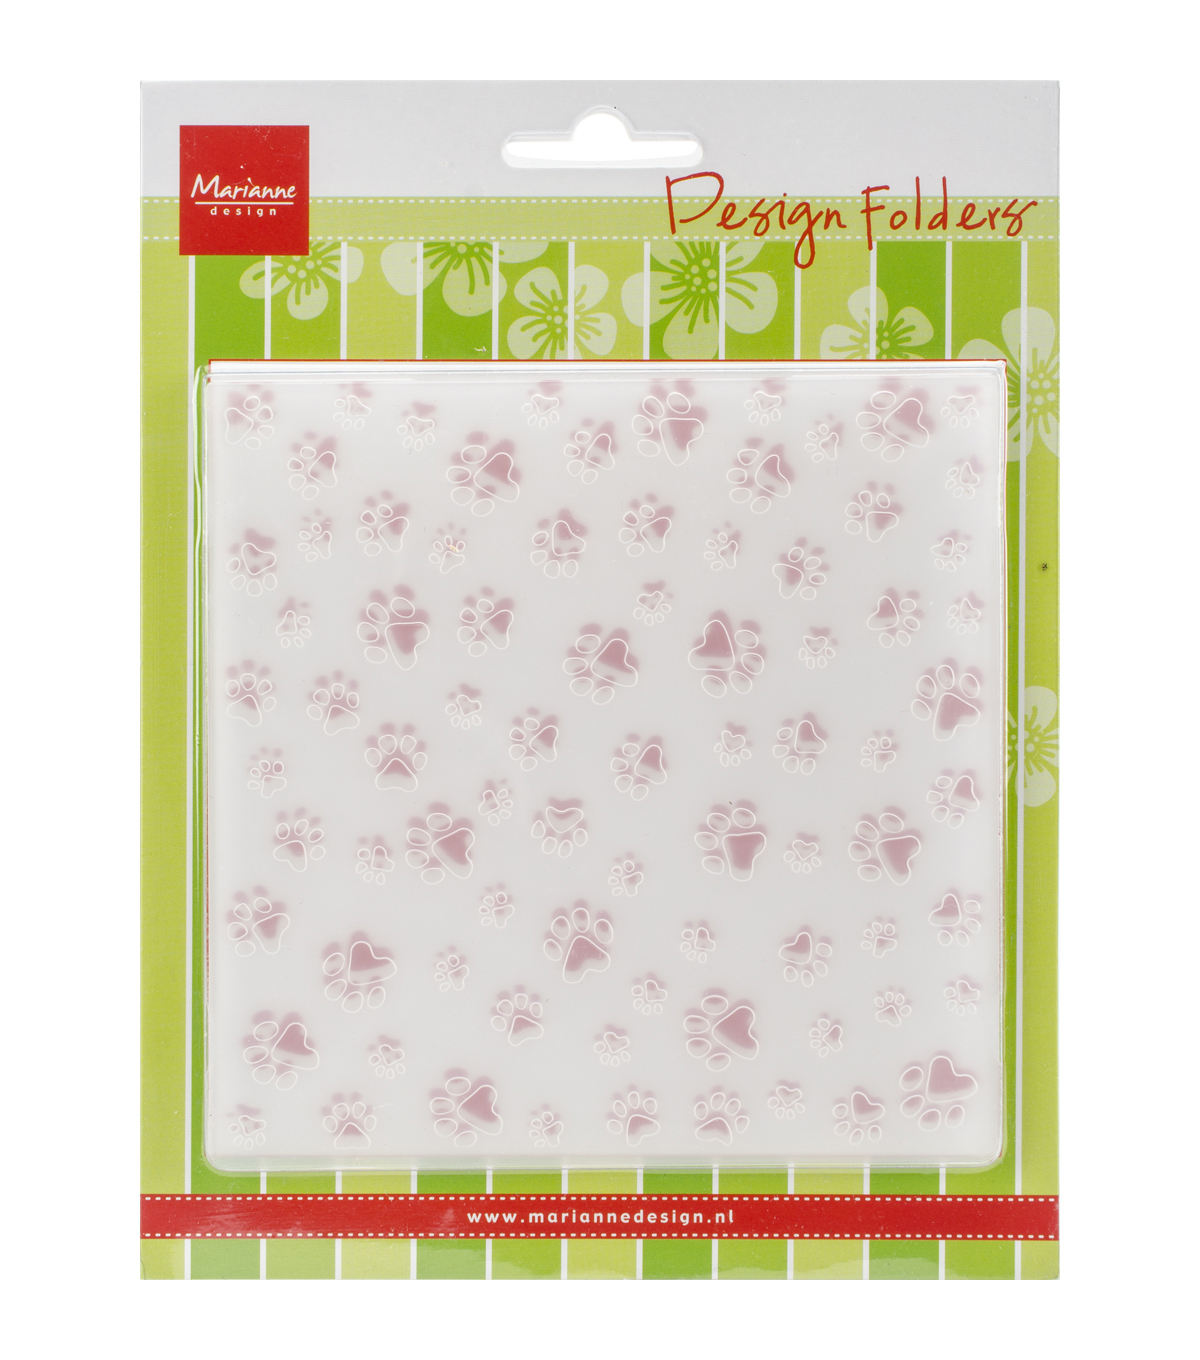 Marianne Design Embossing Folder-Paws Background